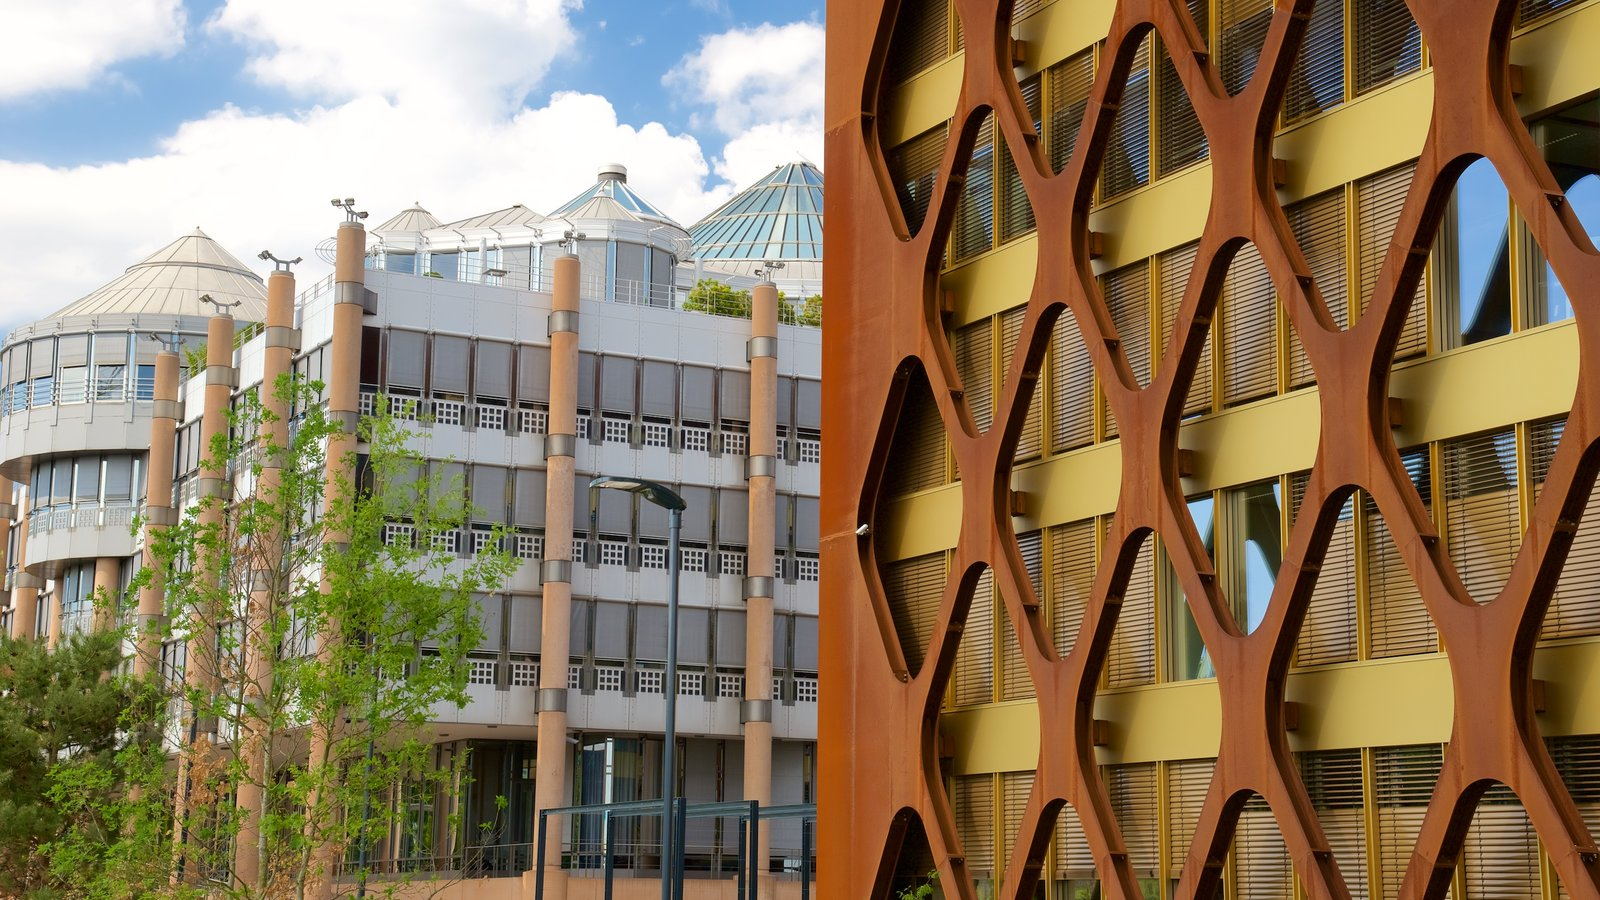 Modern Architecture Pictures: View Images of Luxembourg